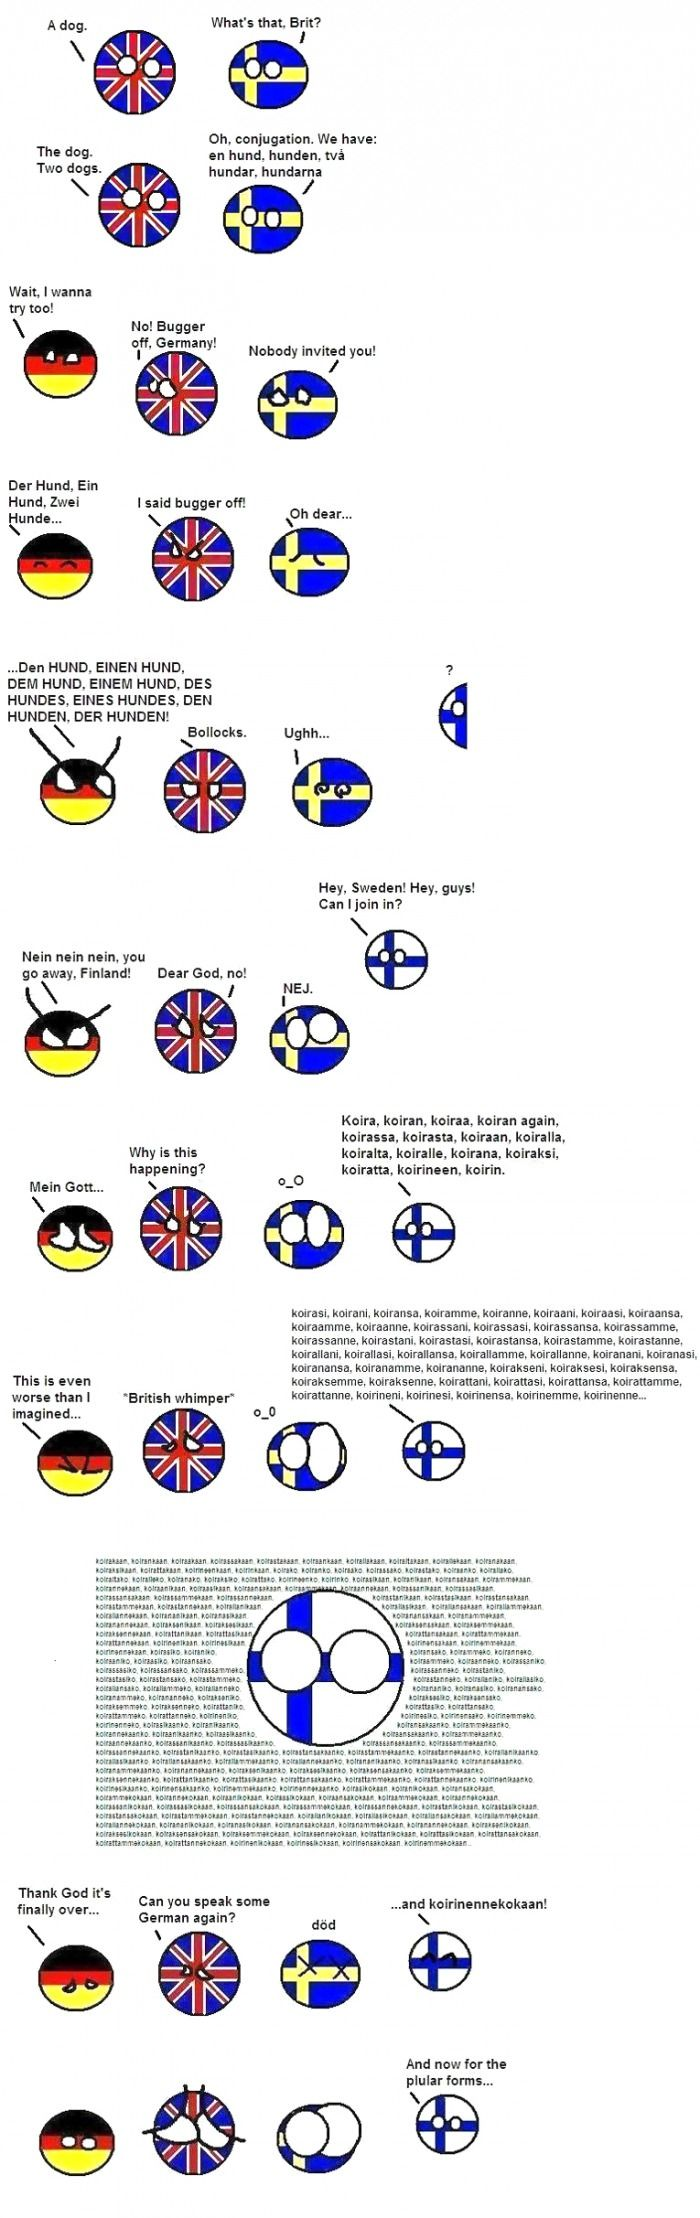 A comic strip showing the complexity of Finnish conjugation